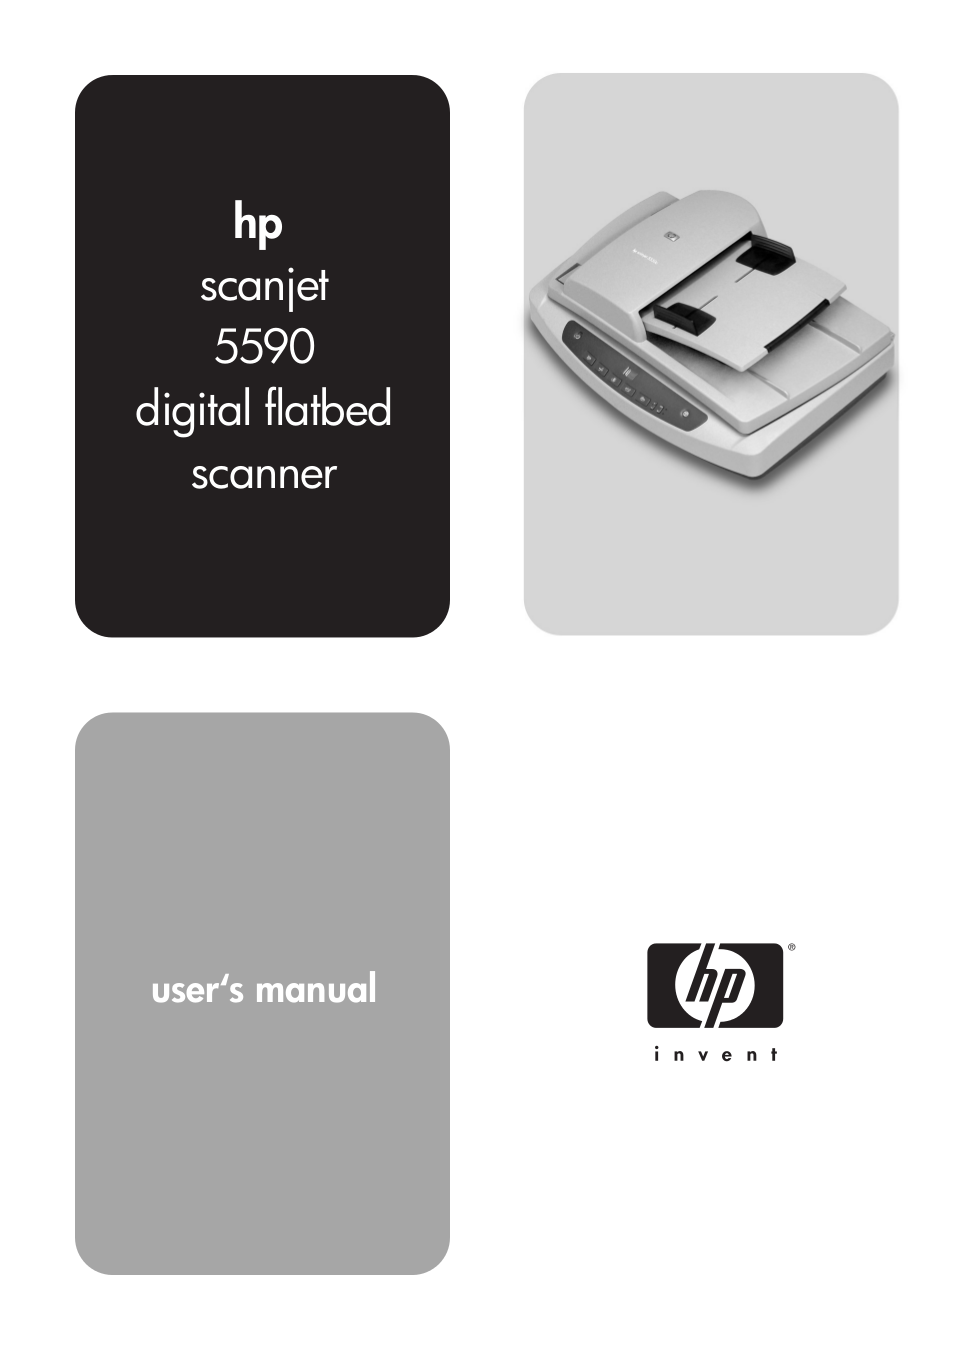 pdf for HP Scanner Scanjet 5590 manual